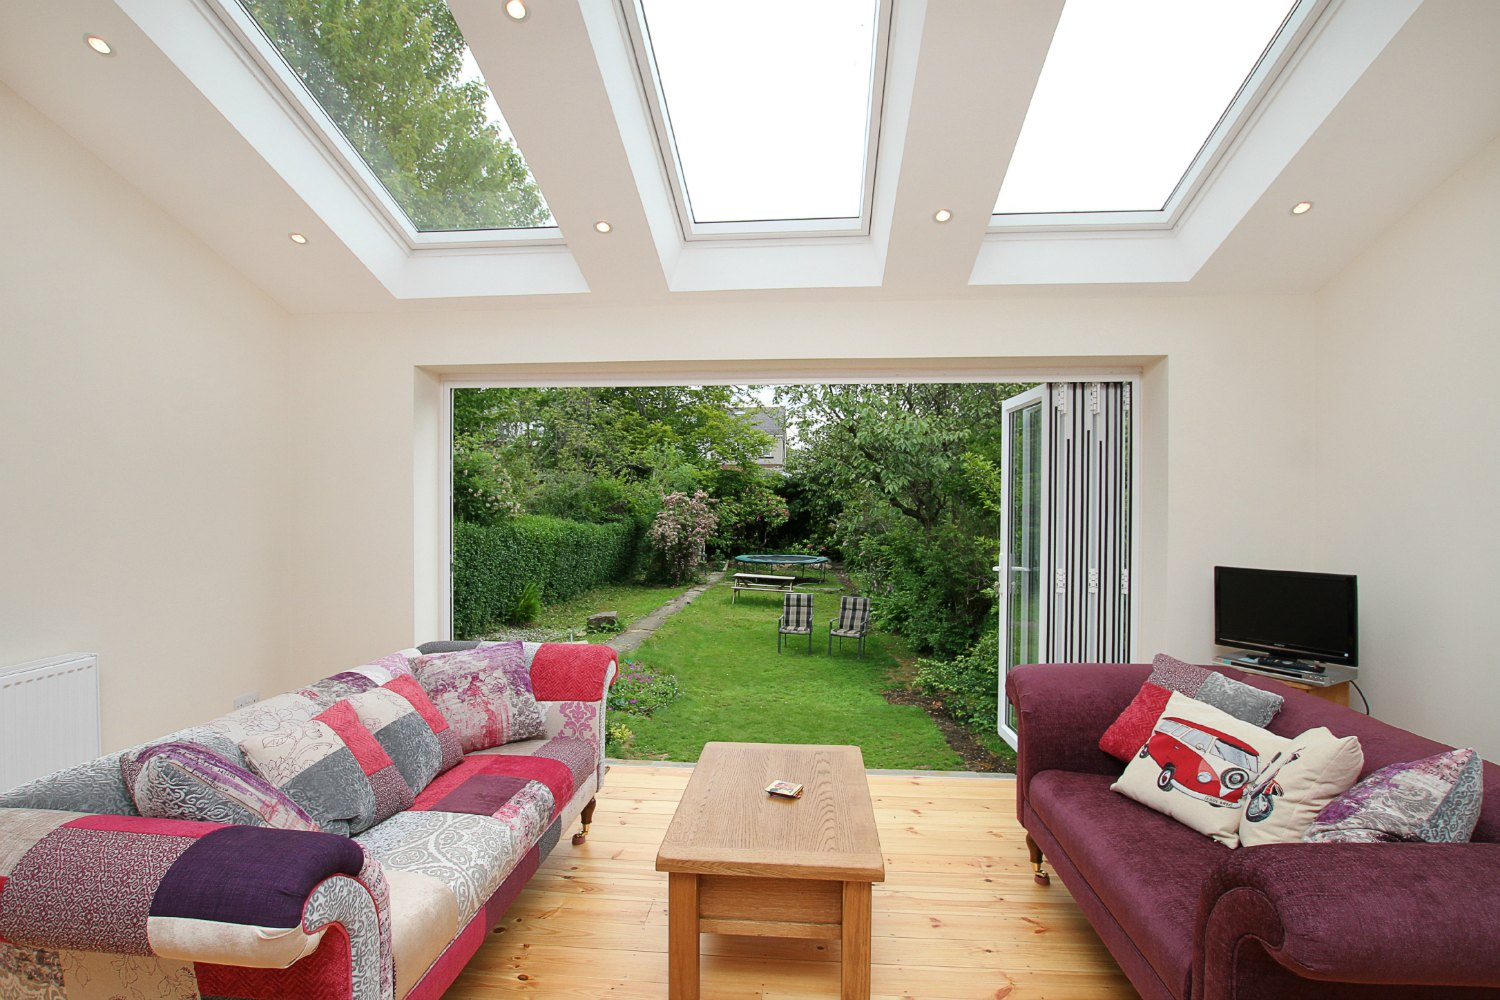 ... Land And Building A House From Scratch. An Extension Is The Most Cost Effective  Way To Increase The Size Of Your Home Without Sacrificing Flexibility.